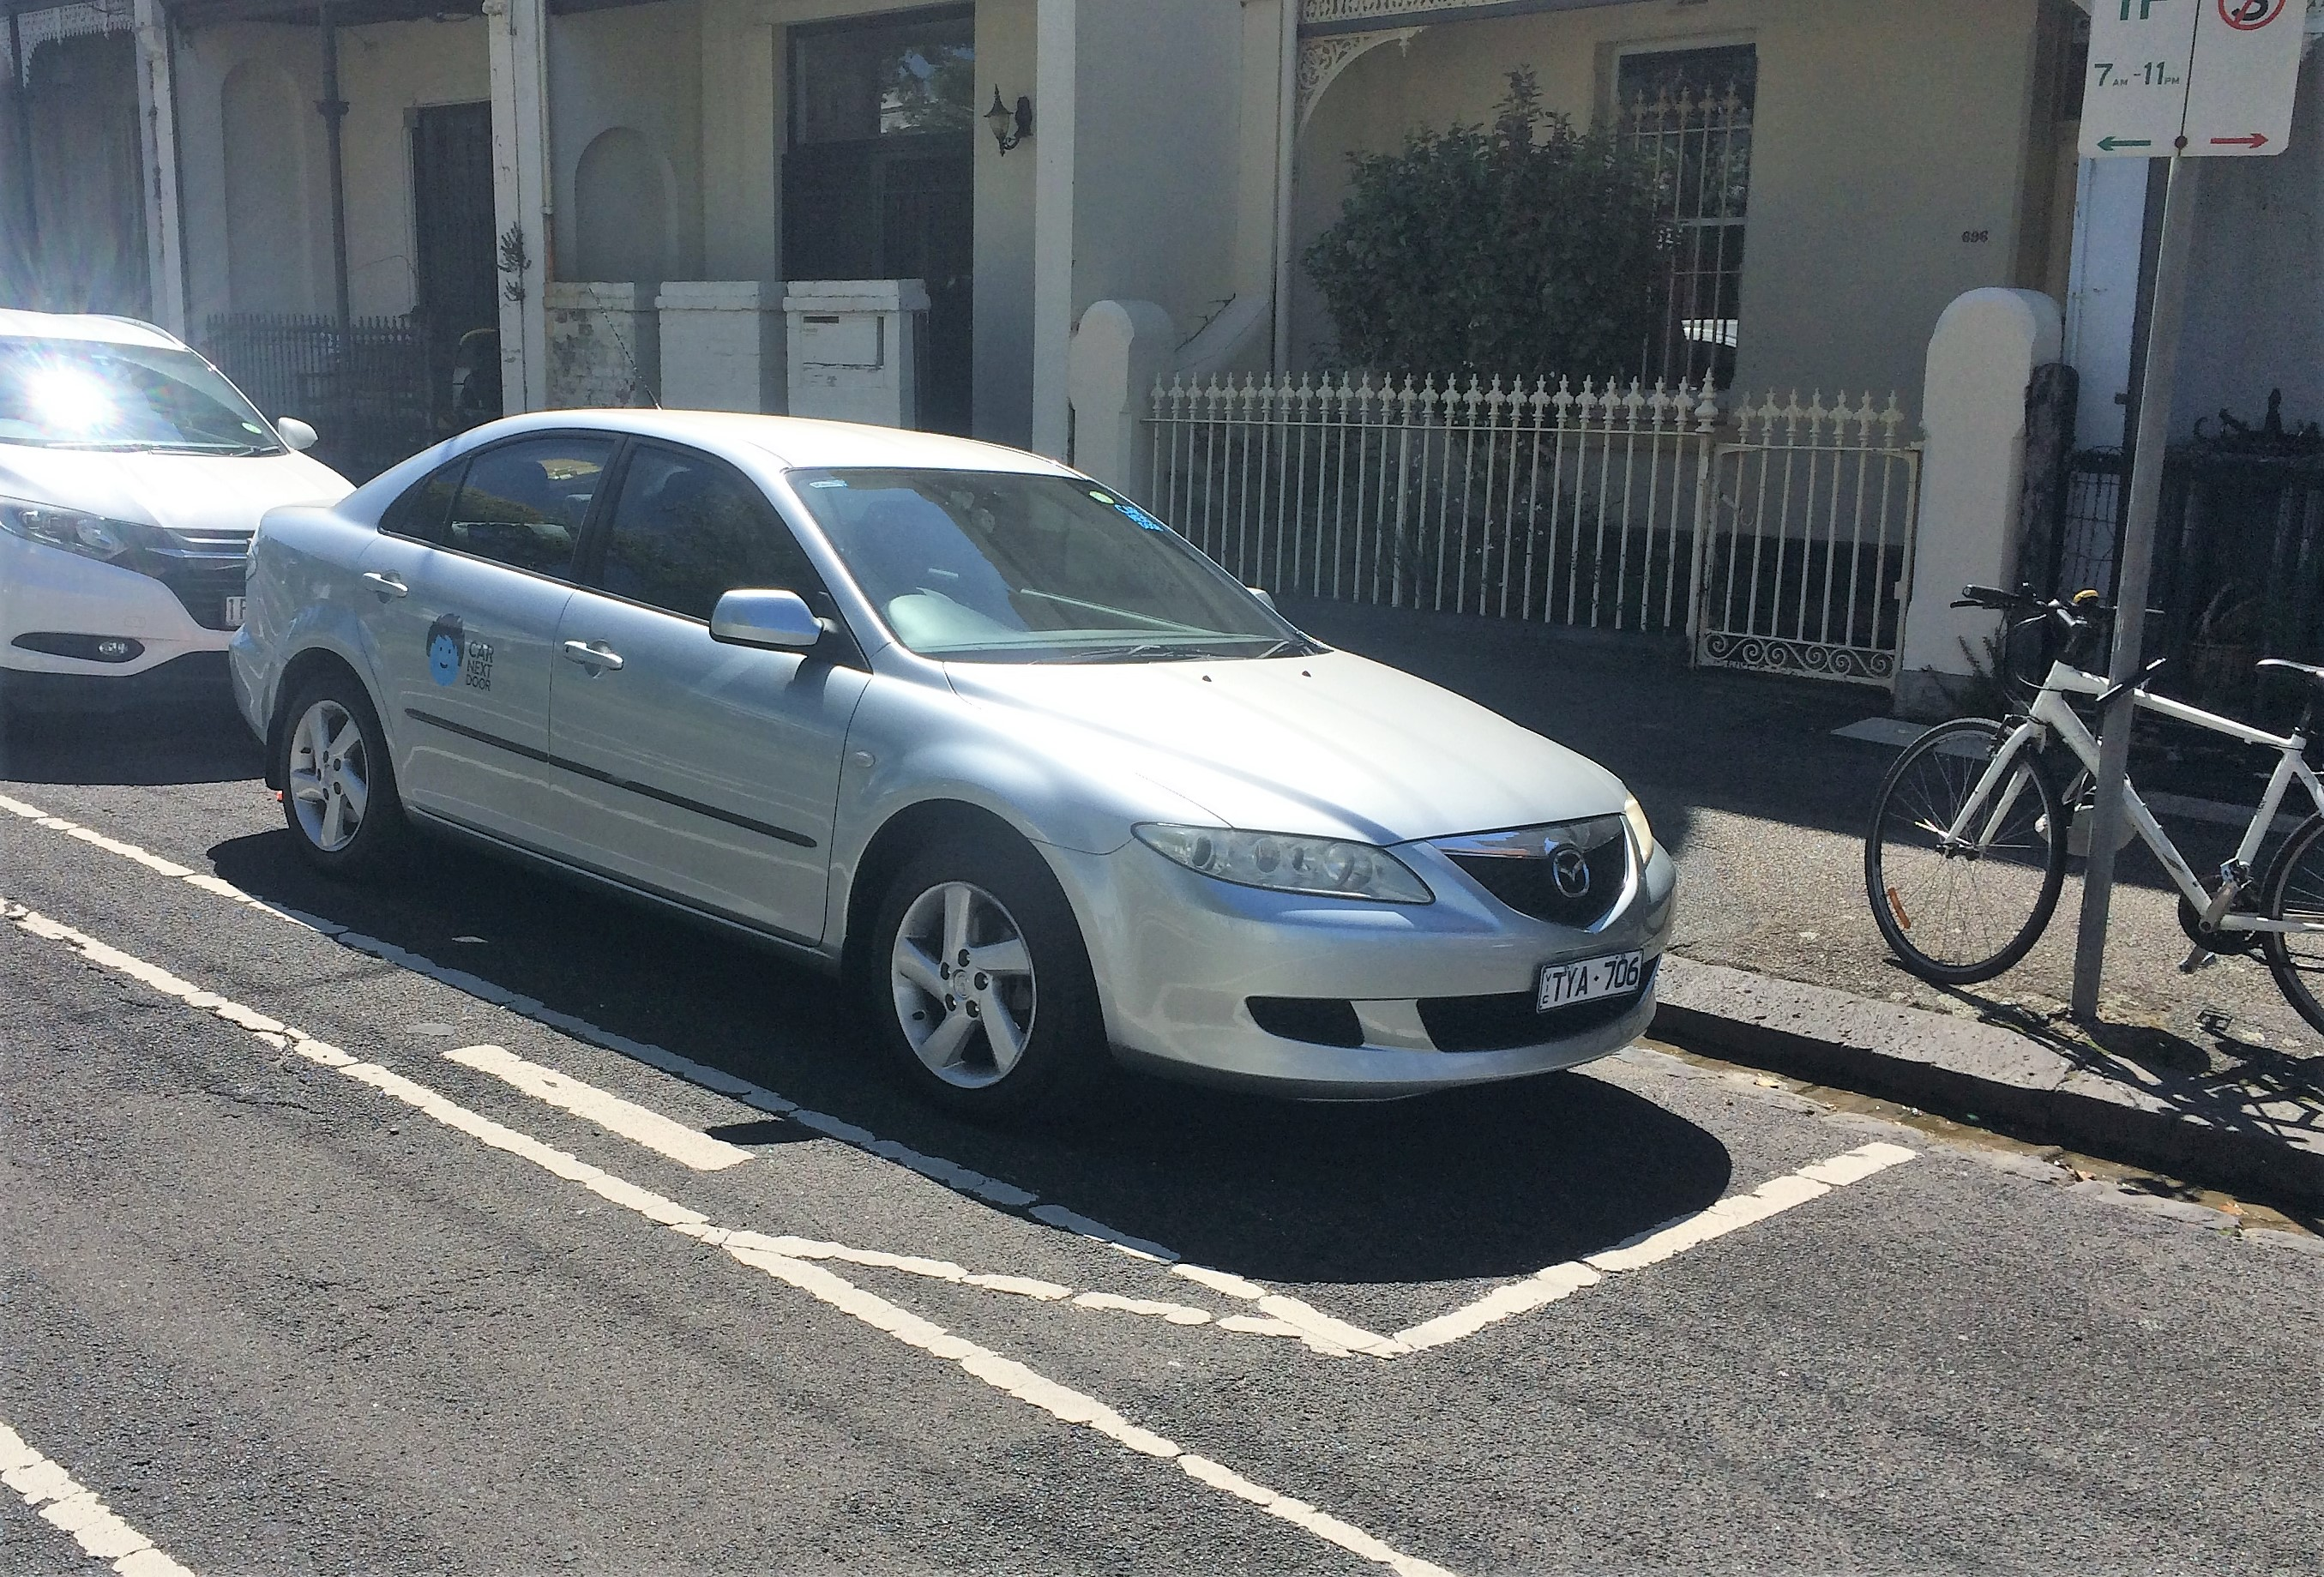 Picture of Alexander's 2004 Mazda 6